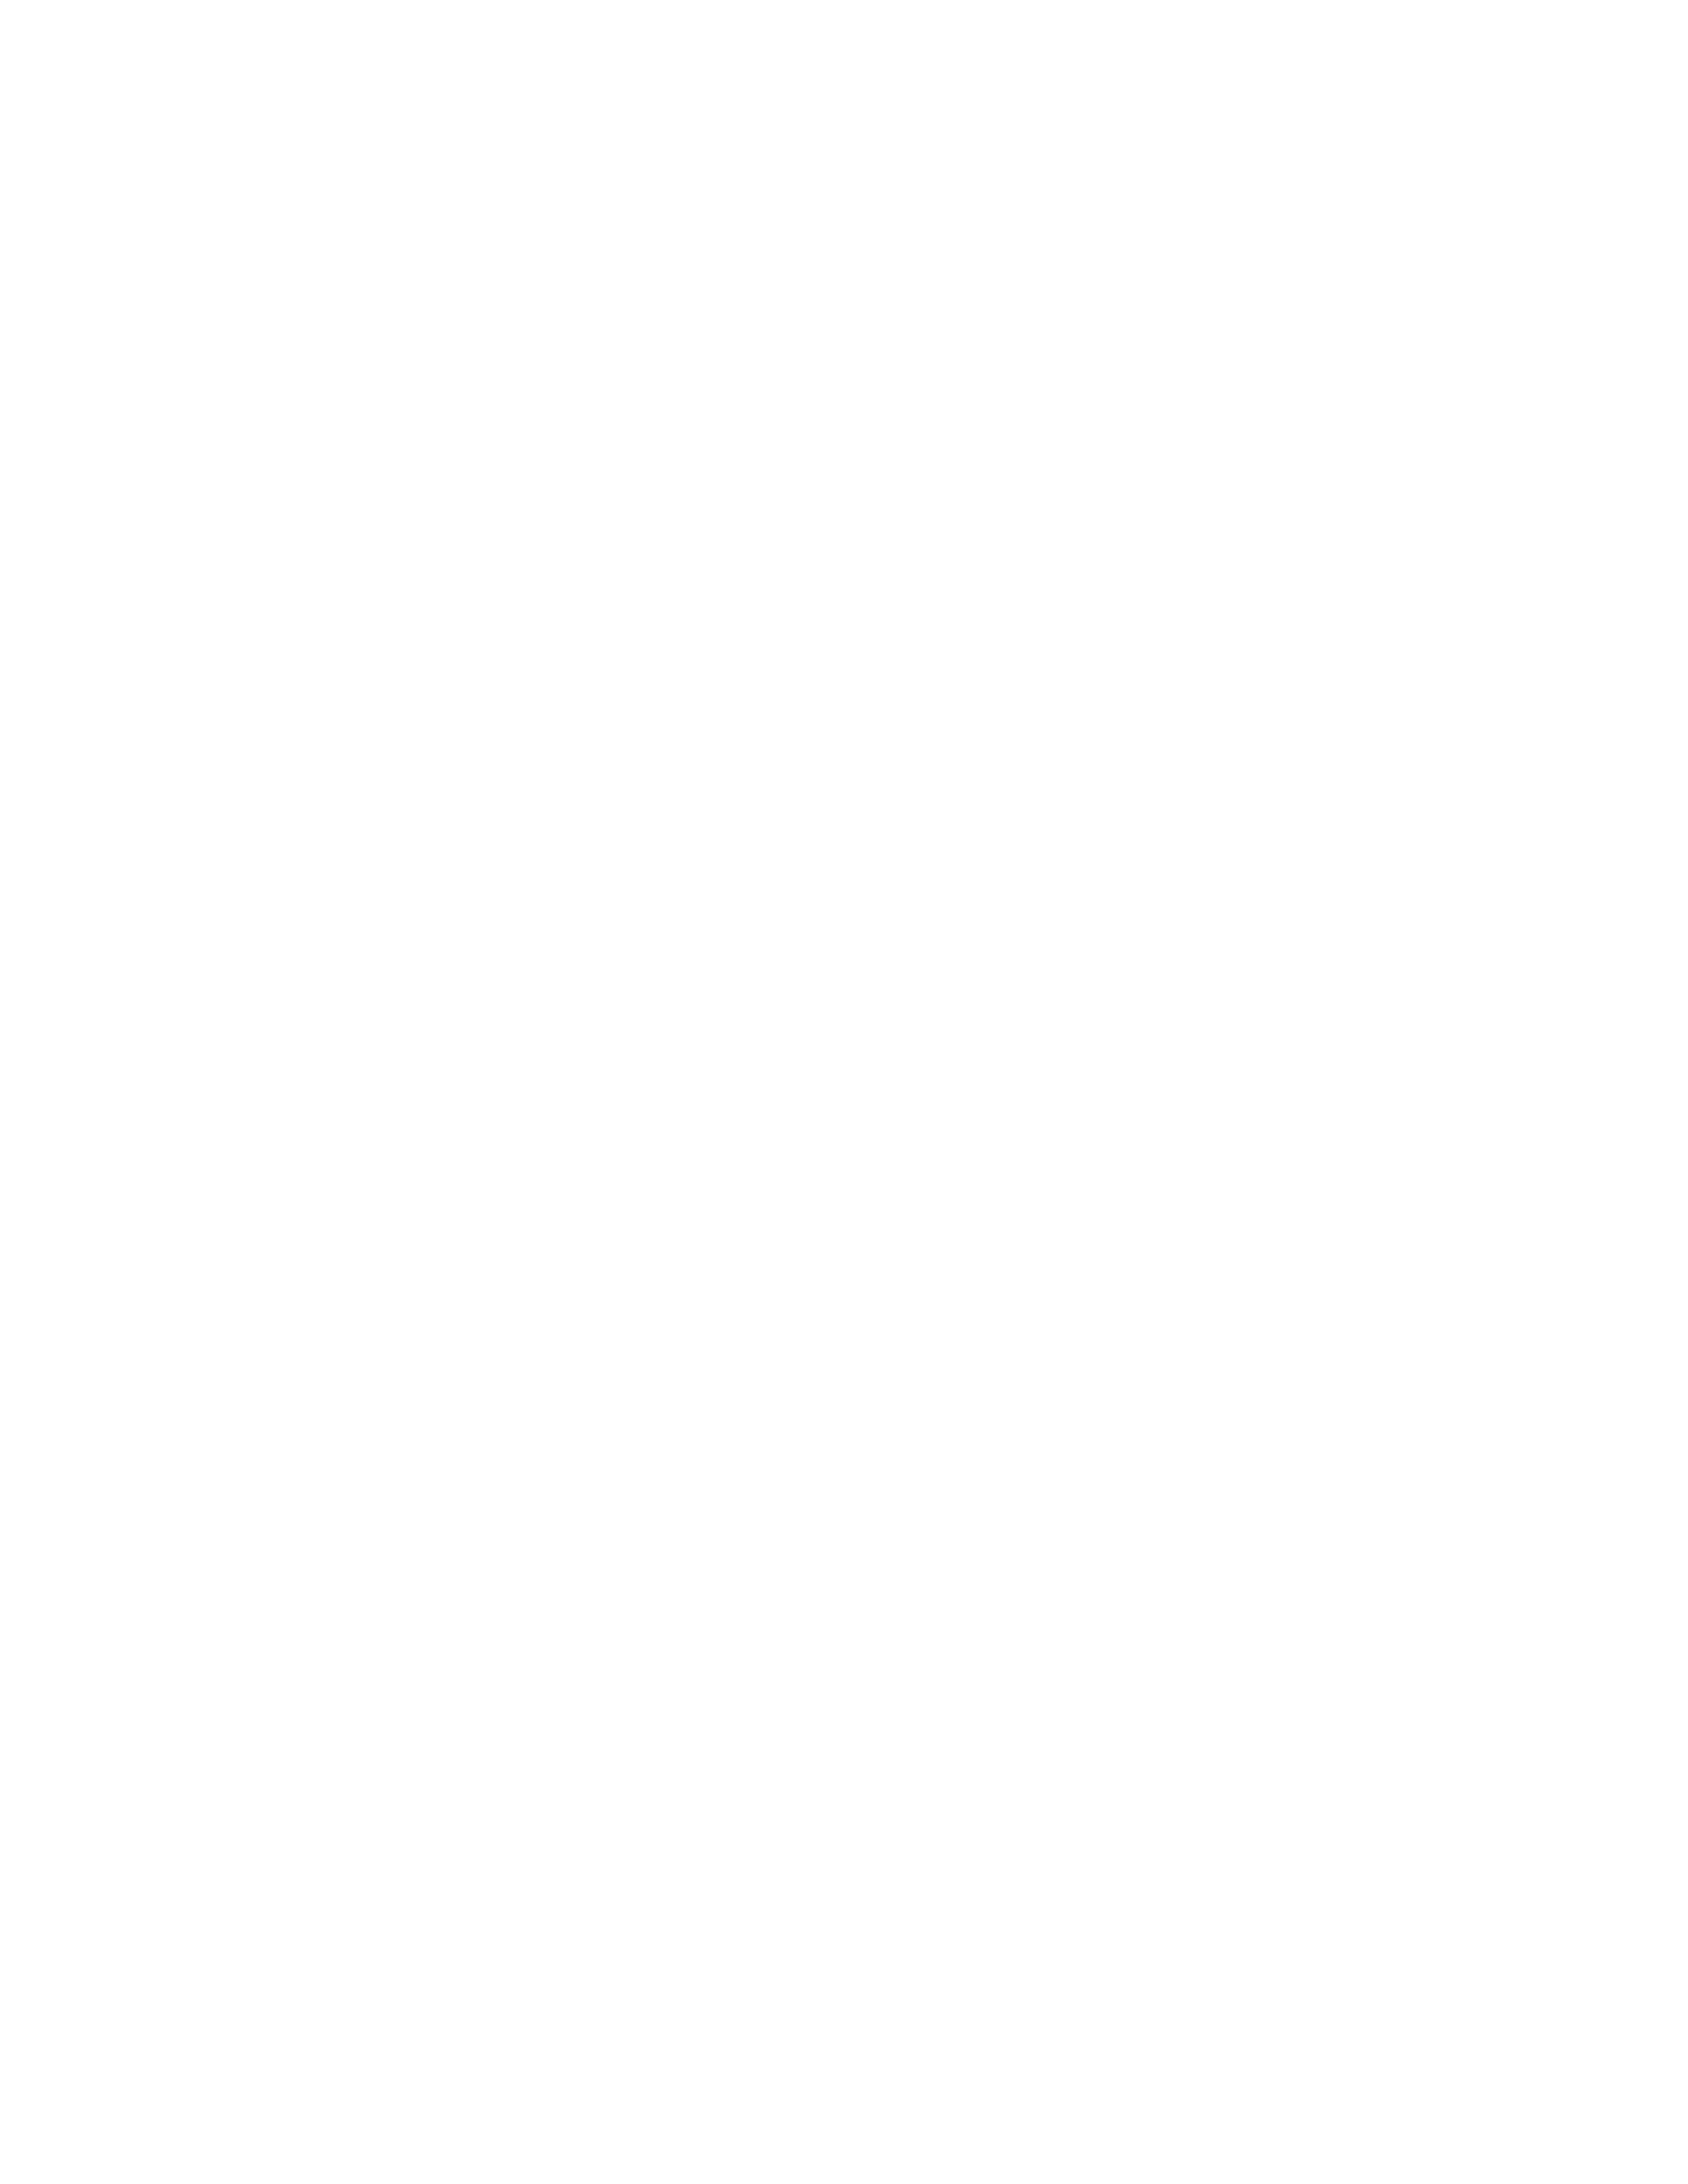 Kd drawing easy.  collection of logo graphic free stock